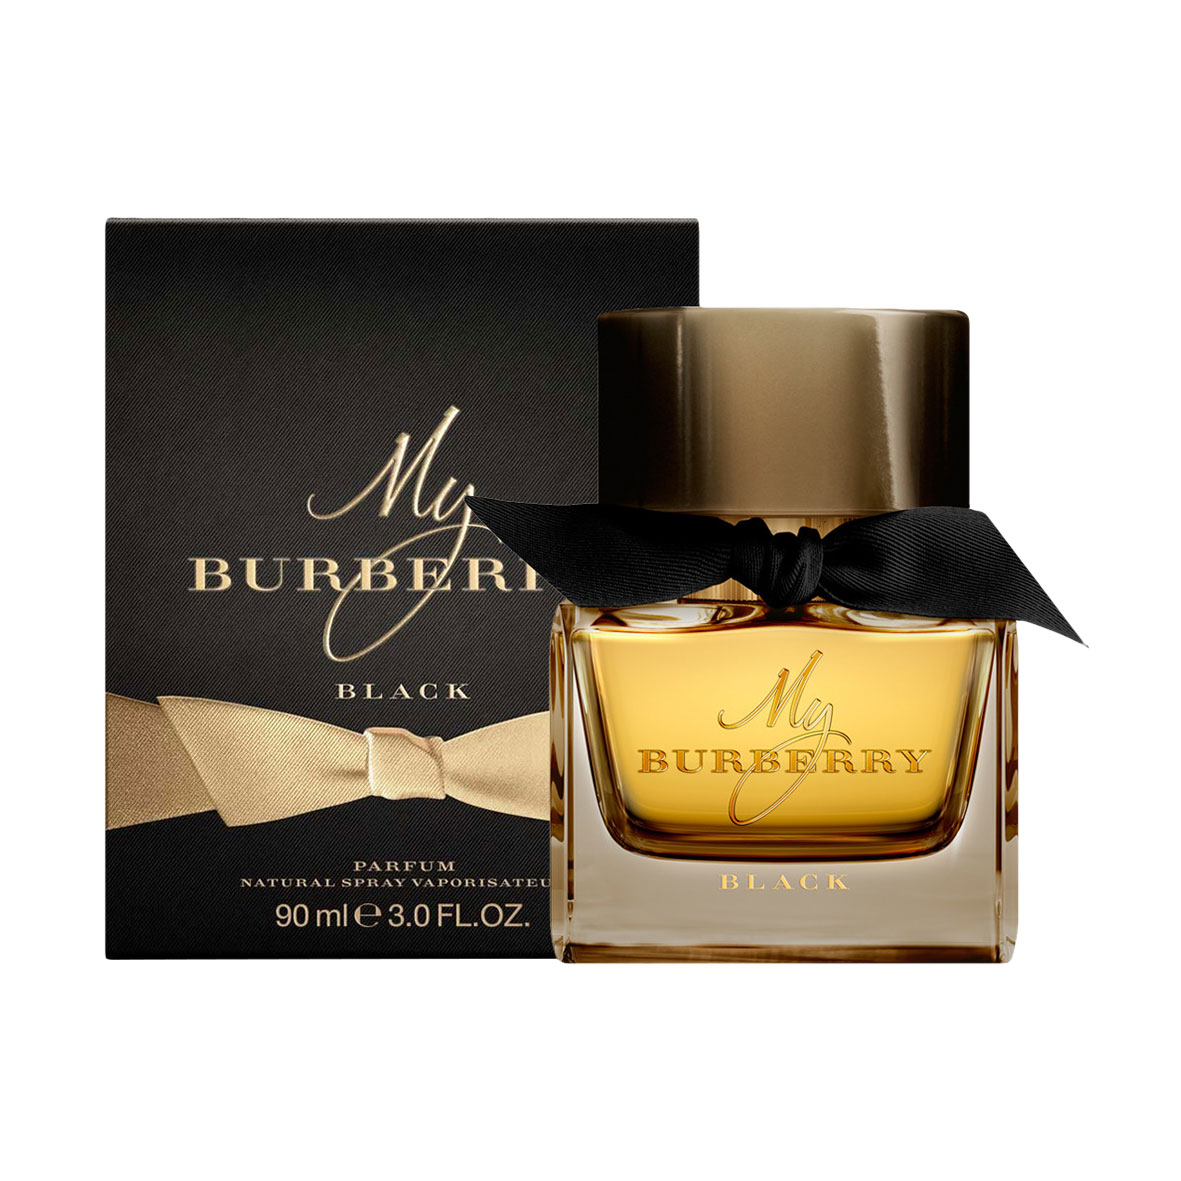 FRAGANCIA BURBERRY MY BURBERRY BLACK PARA DAMA 90 ML